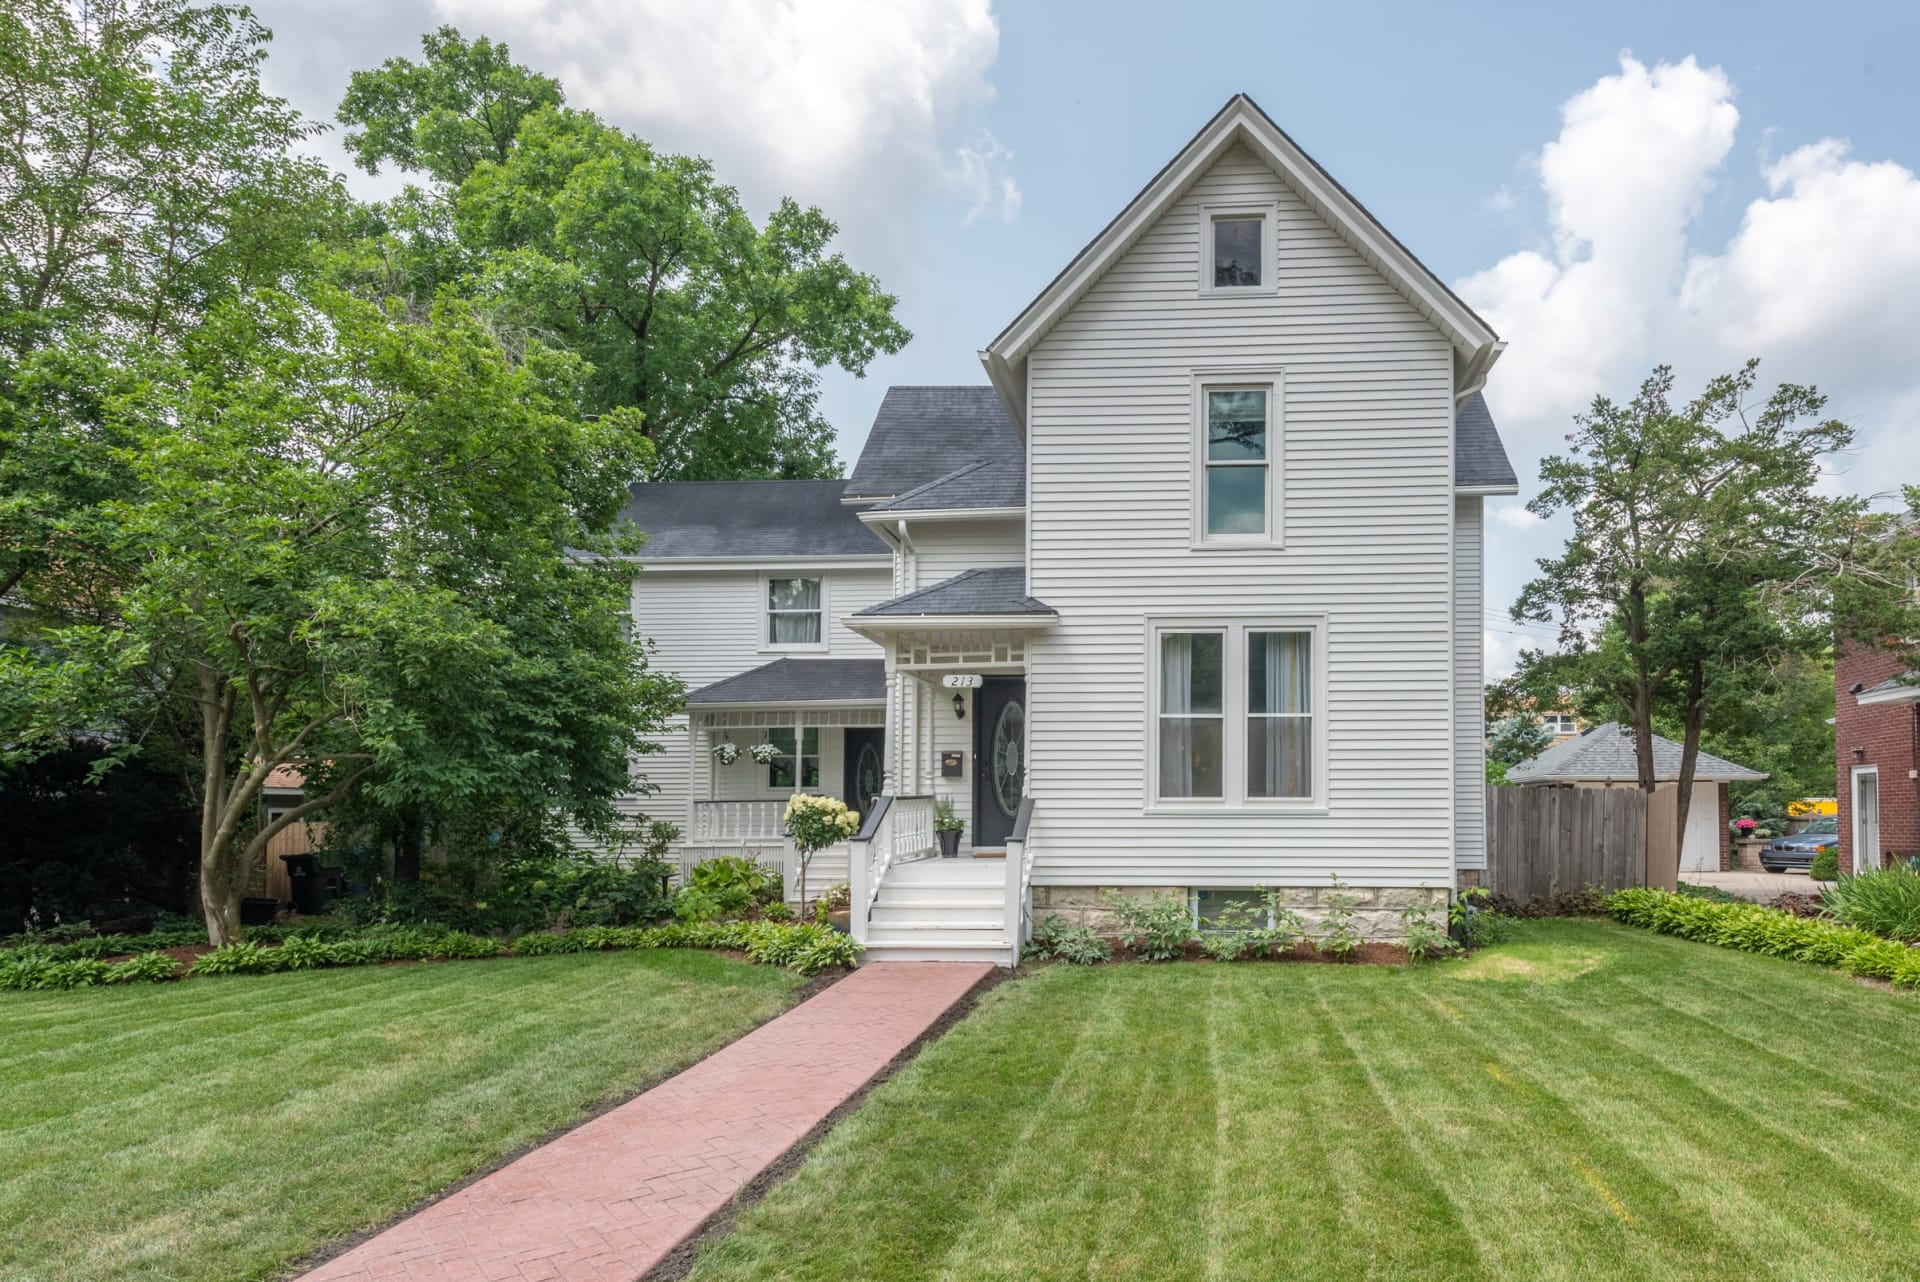 213 N Sleight St, Naperville, IL, 60540 video preview